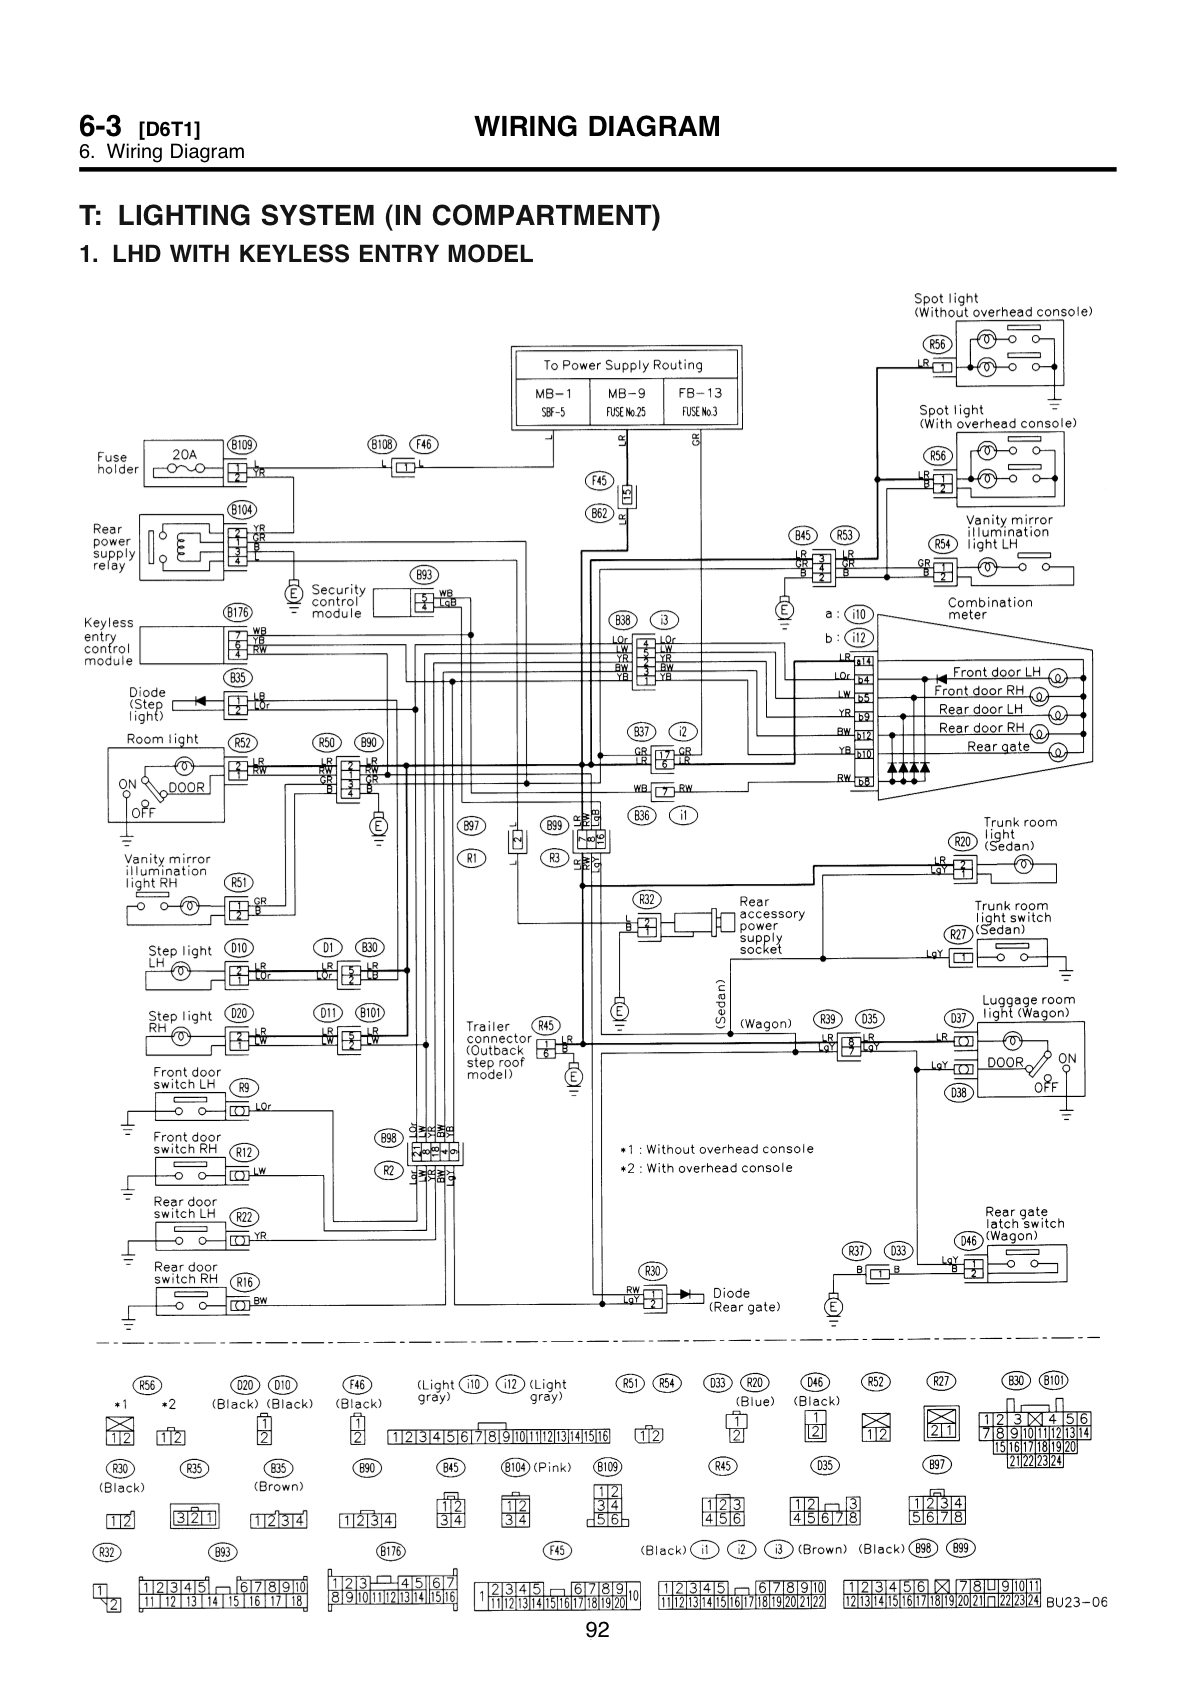 wiring_diagram1?resize\=840%2C1187 diagrams 554363 kramer single humbucker wiring diagram kramer kramer pacer wiring diagram at arjmand.co